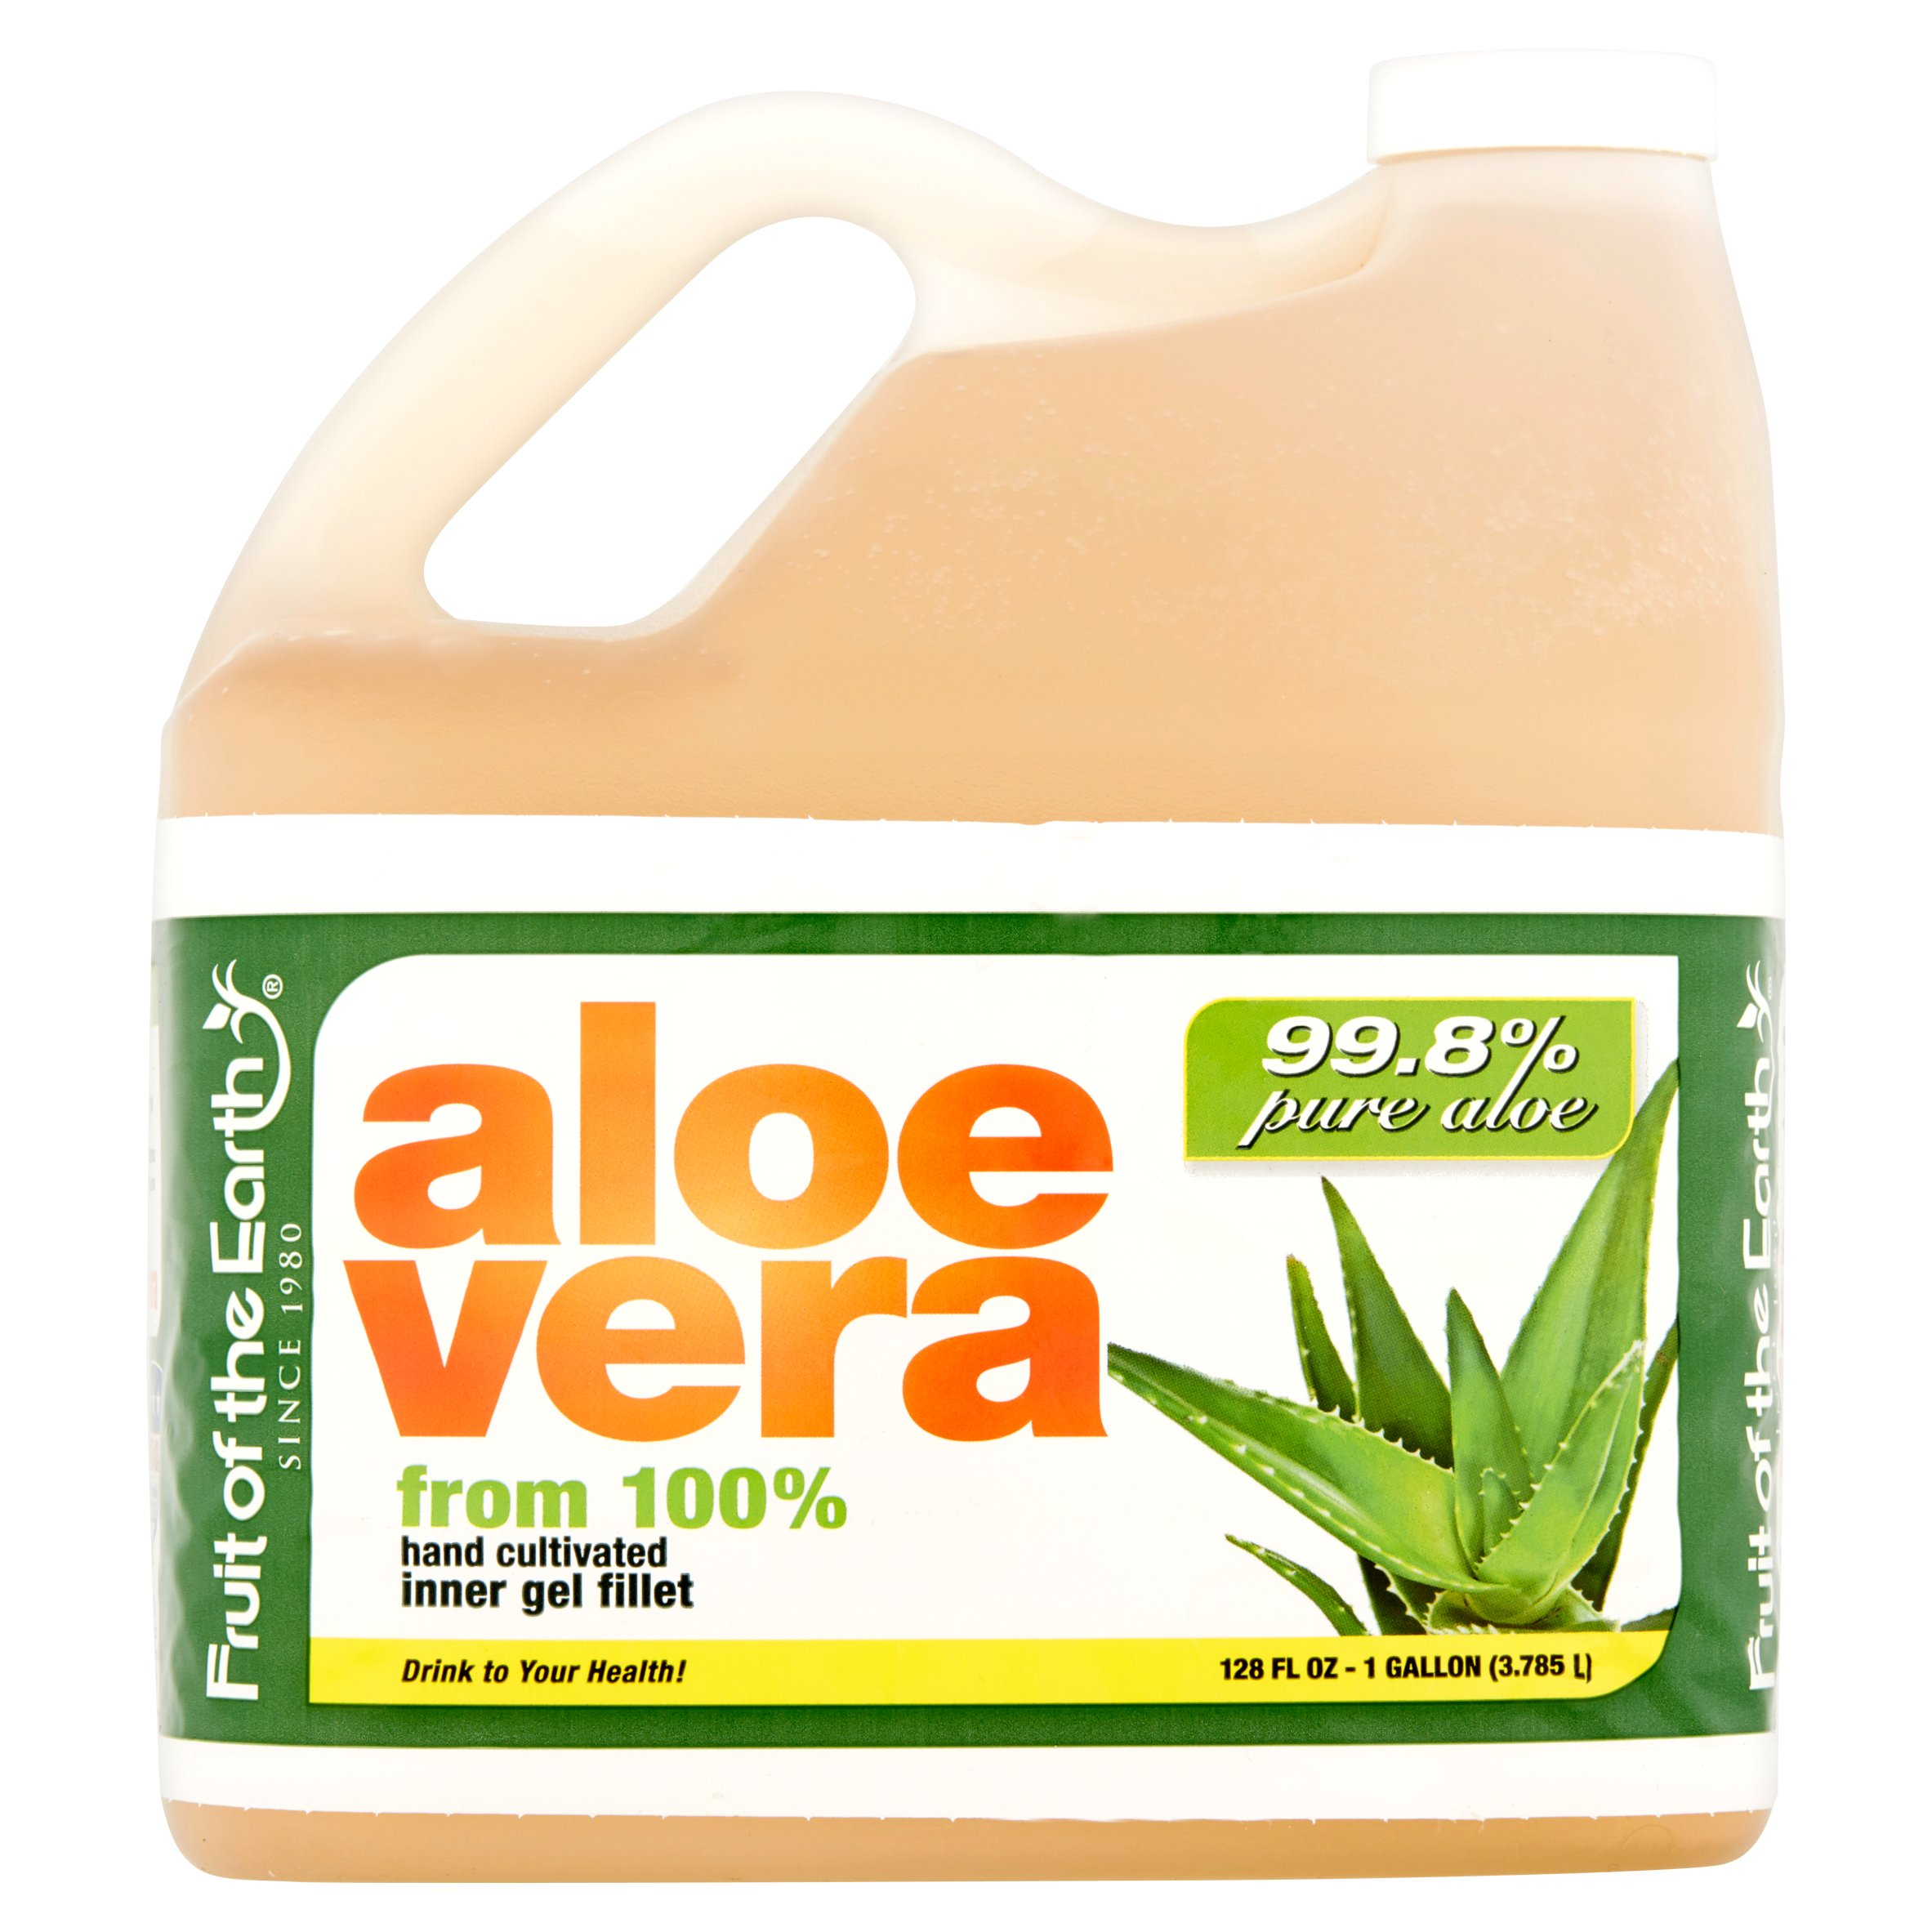 Fruit Of The Earth Aloe Vera Juice With 99.8% Aloe, 1 gal by Fruit of the Earth, Inc.